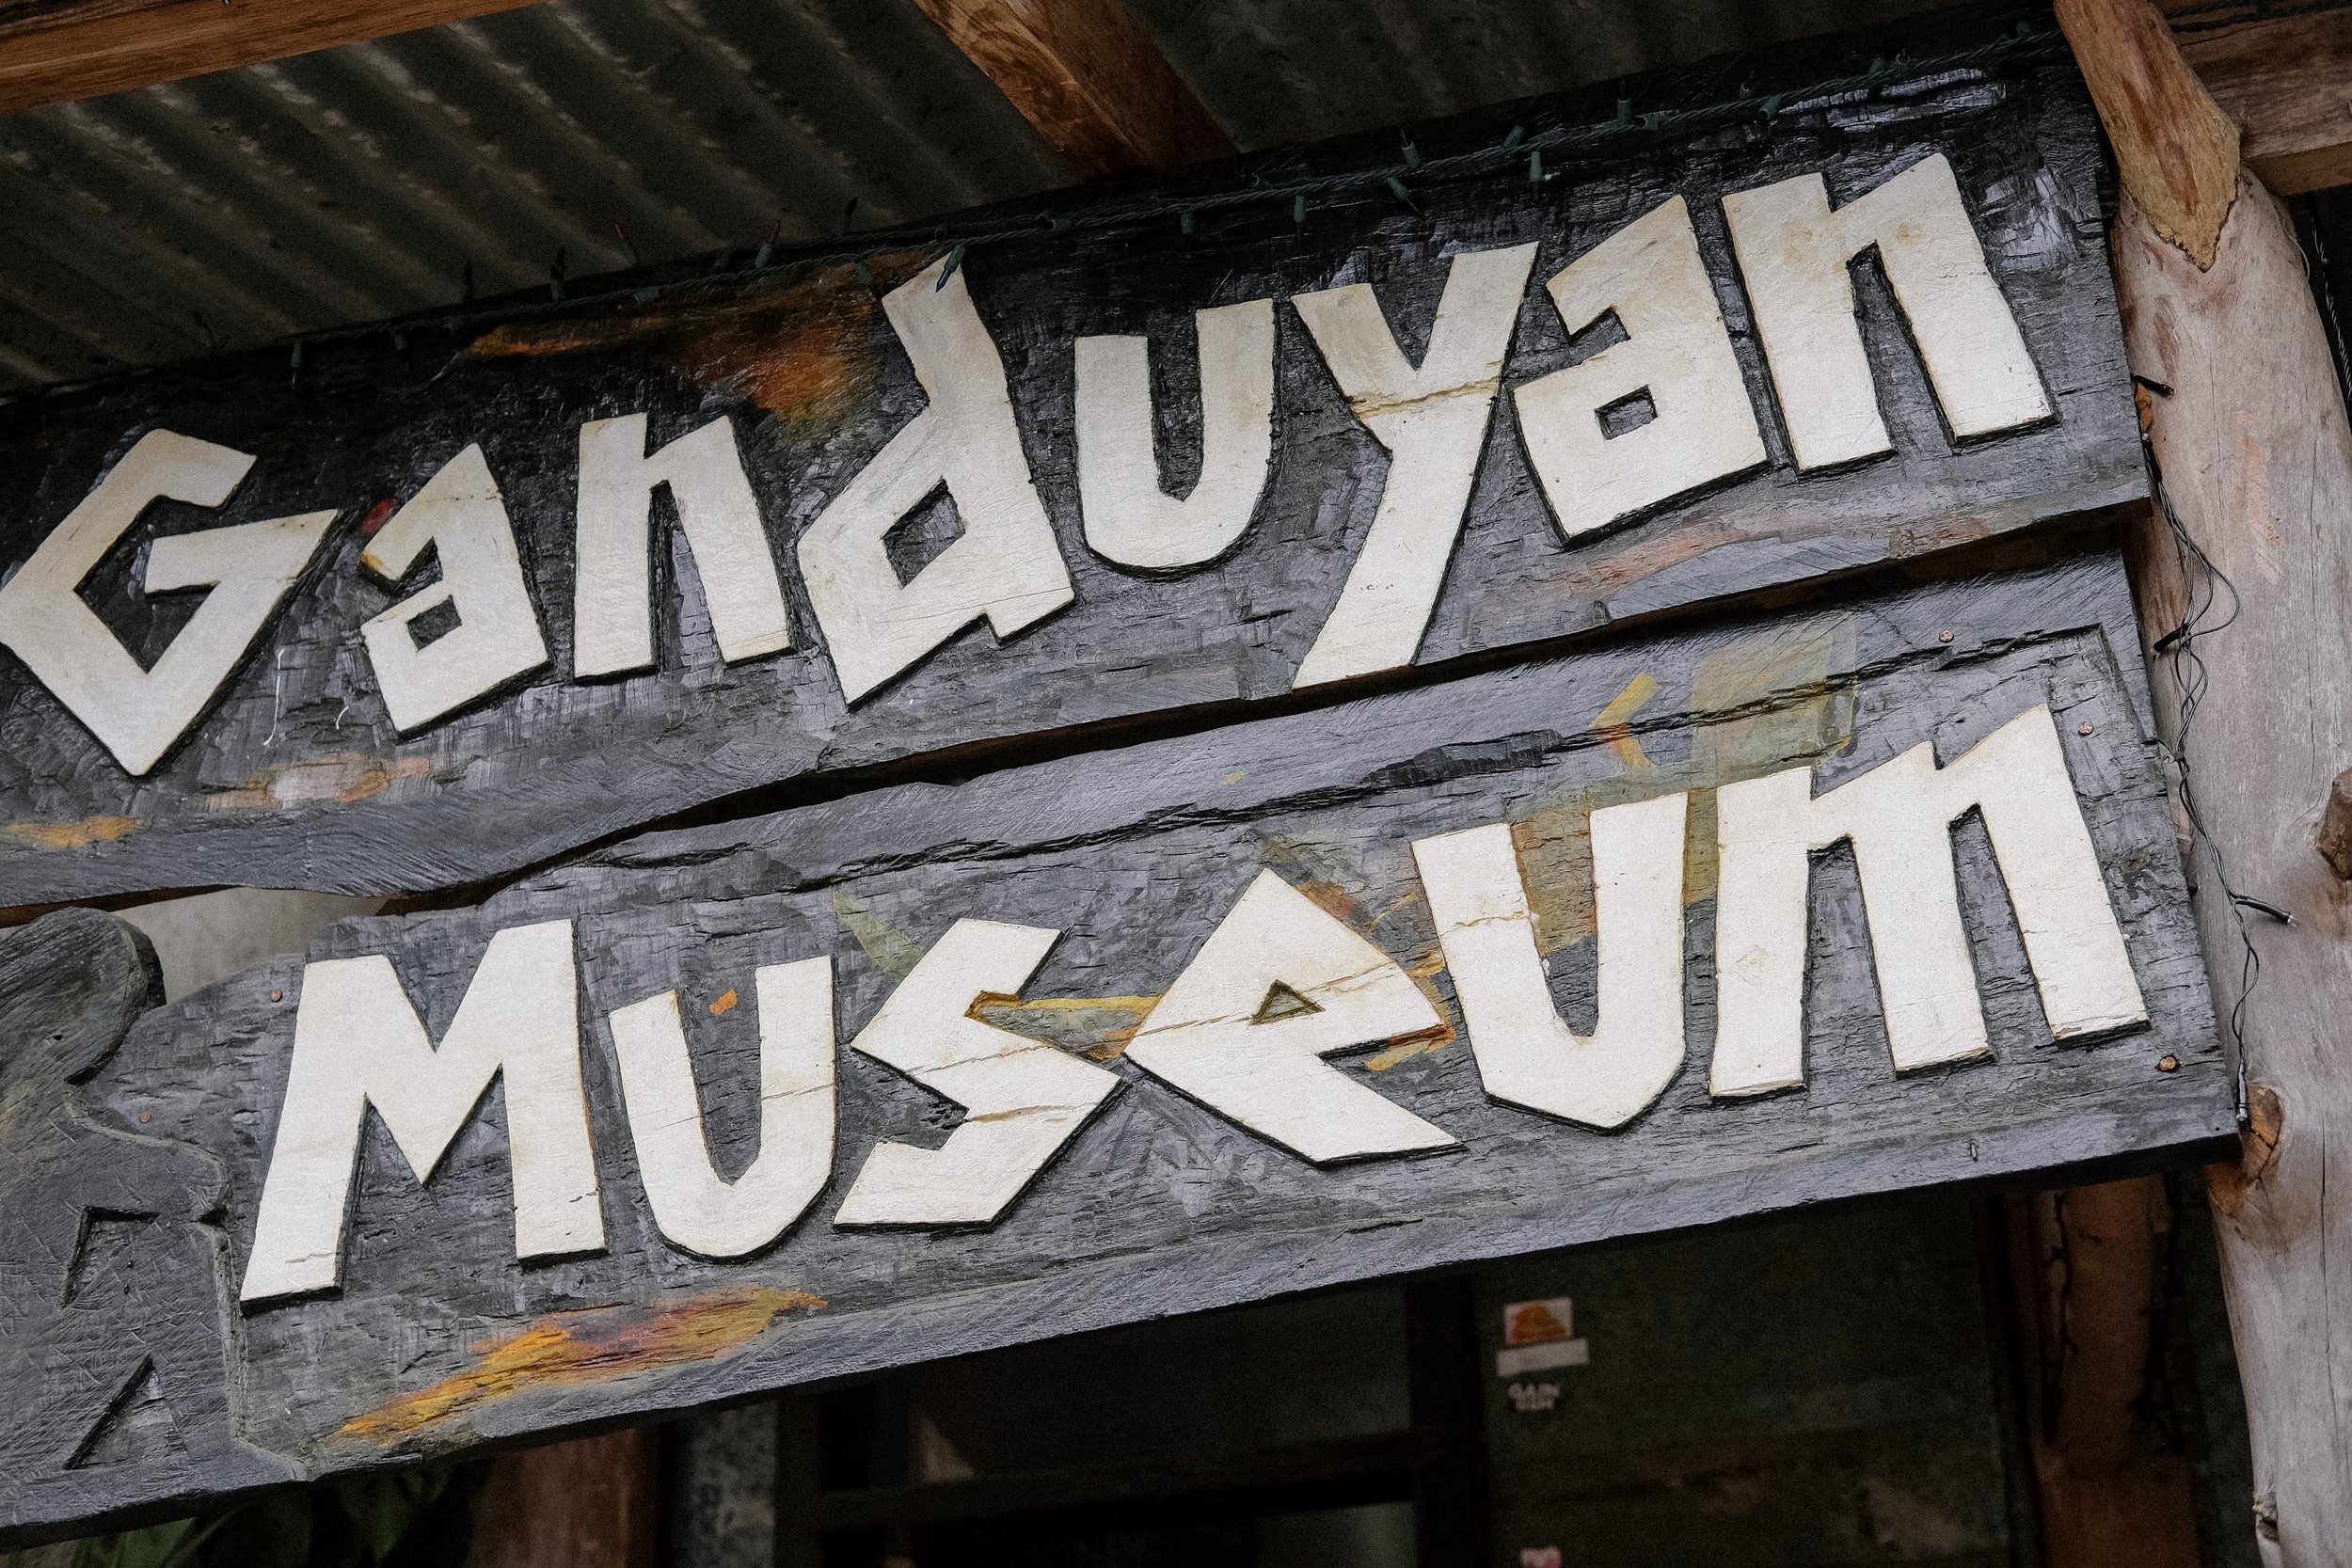 GANDUYAN MUSEUM - This small museum is packed with an anthropologist's dream of sculptures, jewellery and other Kankanay artefacts.Be sure to chat to the owner, the son of the late founder Christina Aben, who is a font of information about local culture and history. Ganduyan is the traditional Kankanay name for Sagada.We couldn't take photos inside, but it is worth the visit, especially when you want to know more about Sagada and its roots, its history.